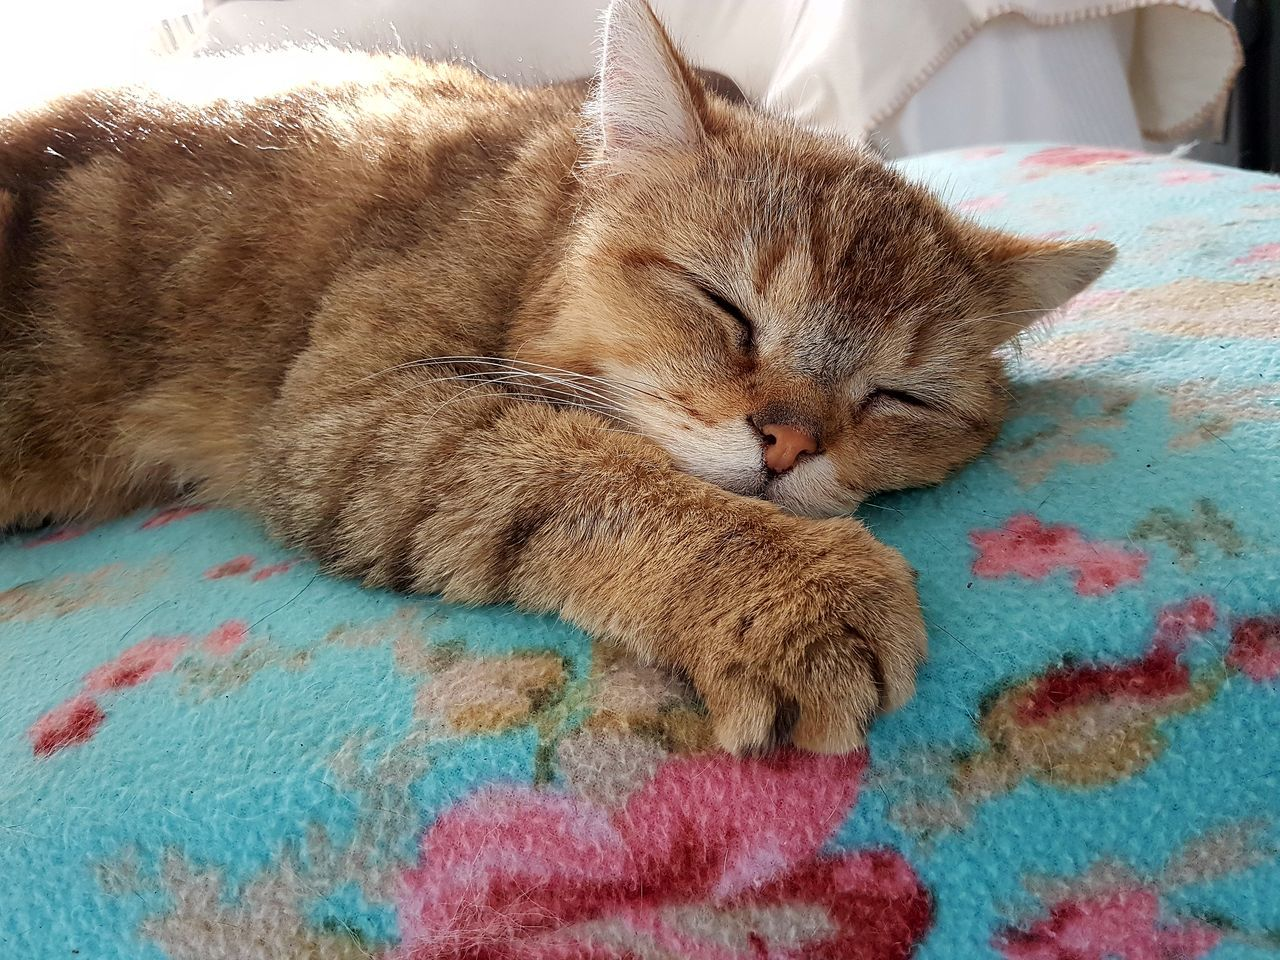 Indoors  High Angle View Mammal Animal Themes No People Relaxation Lying Down Bed Close-up Domestic Animals Pets Day Britishshorthair At Home Chillin  The Purist (no Edit, No Filter) British Shorthair Golden Shaded Raw Photography Mycat❤ Hummel